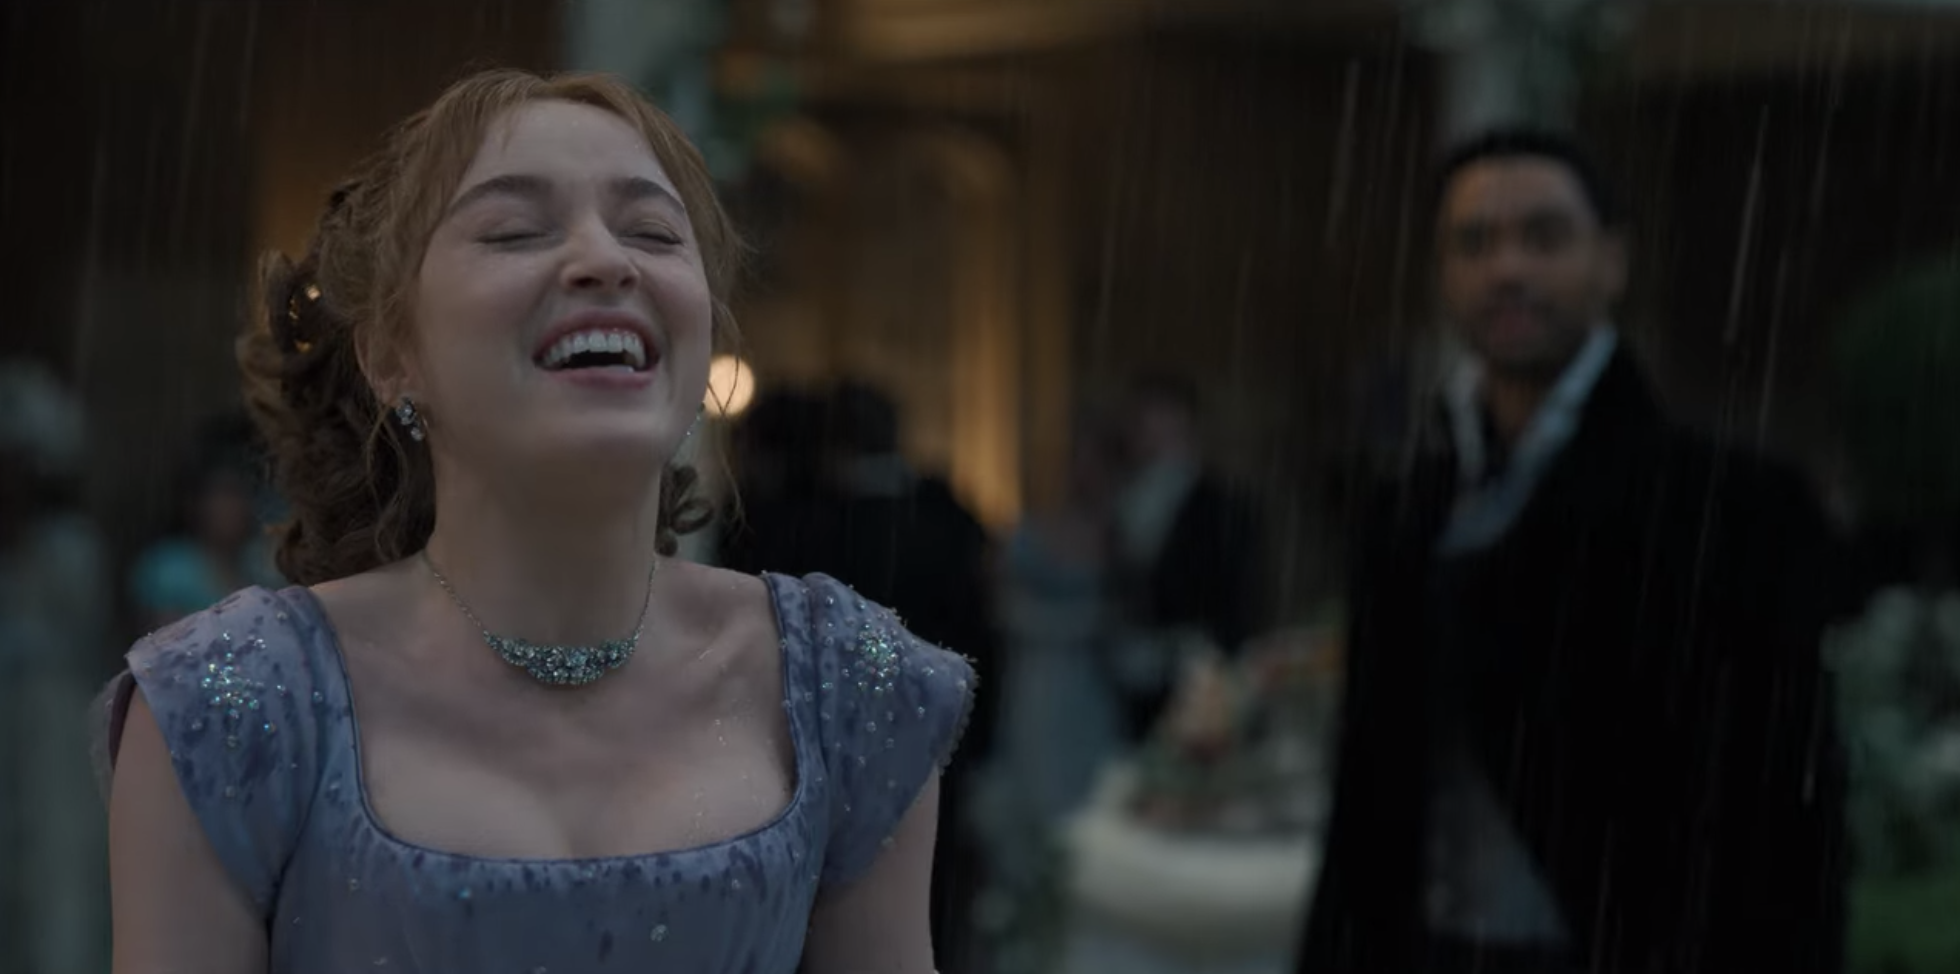 Daphne laughing in the rain as Simon looks at her with love